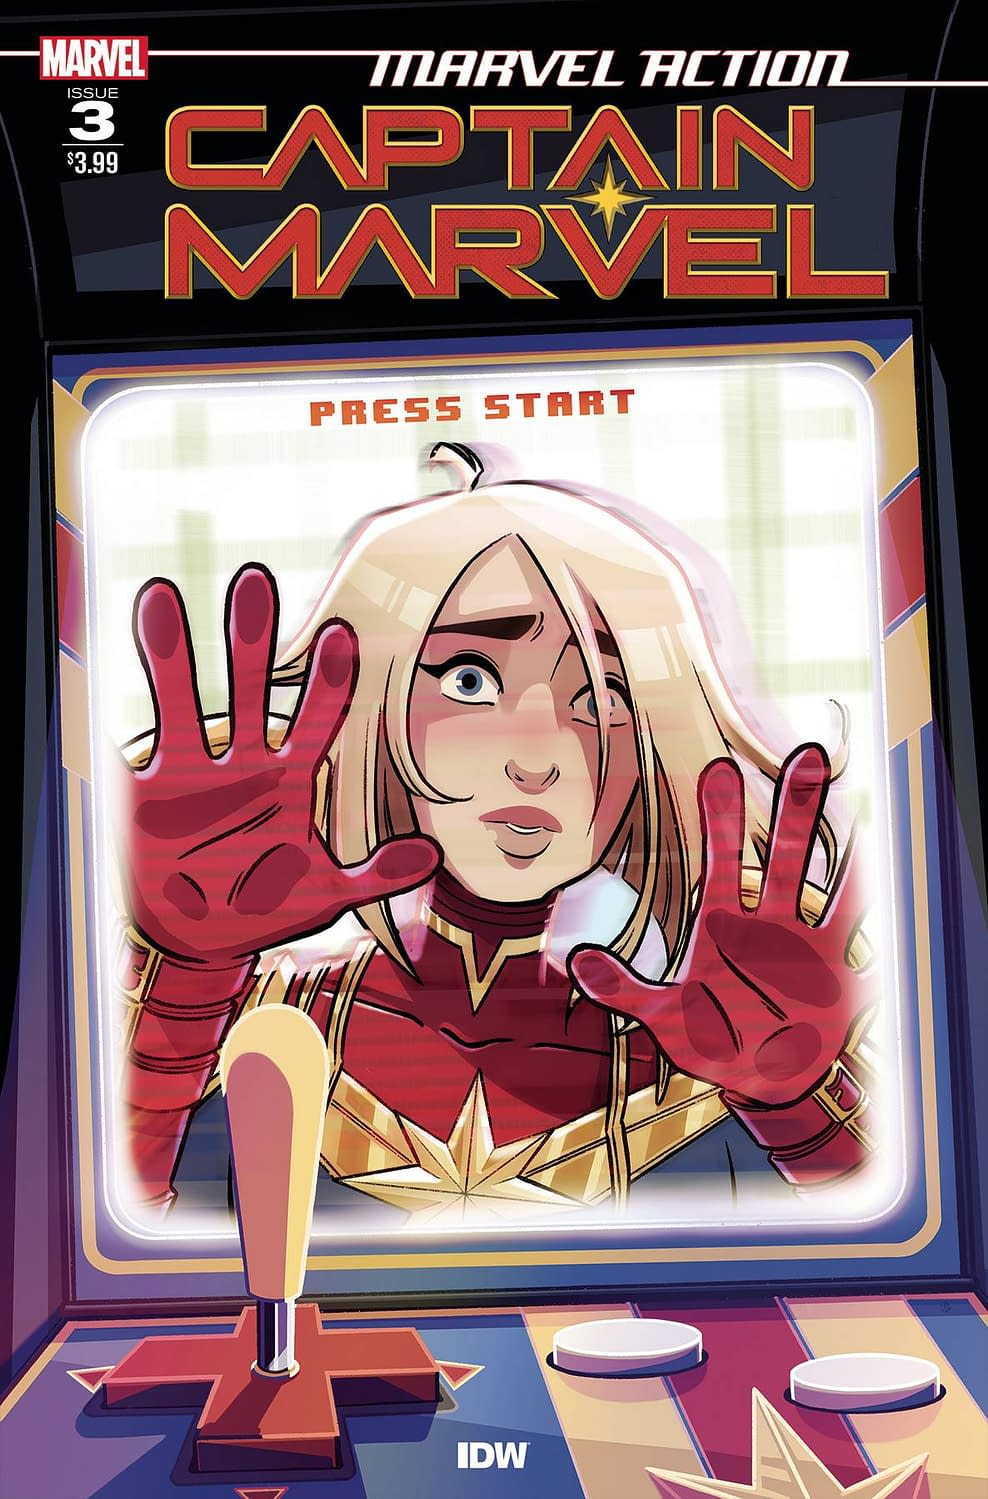 IDW Full Solicitations For March 2021 With Godzilla, Disney & GI Joe MARVEL ACTION CAPTAIN MARVEL #3